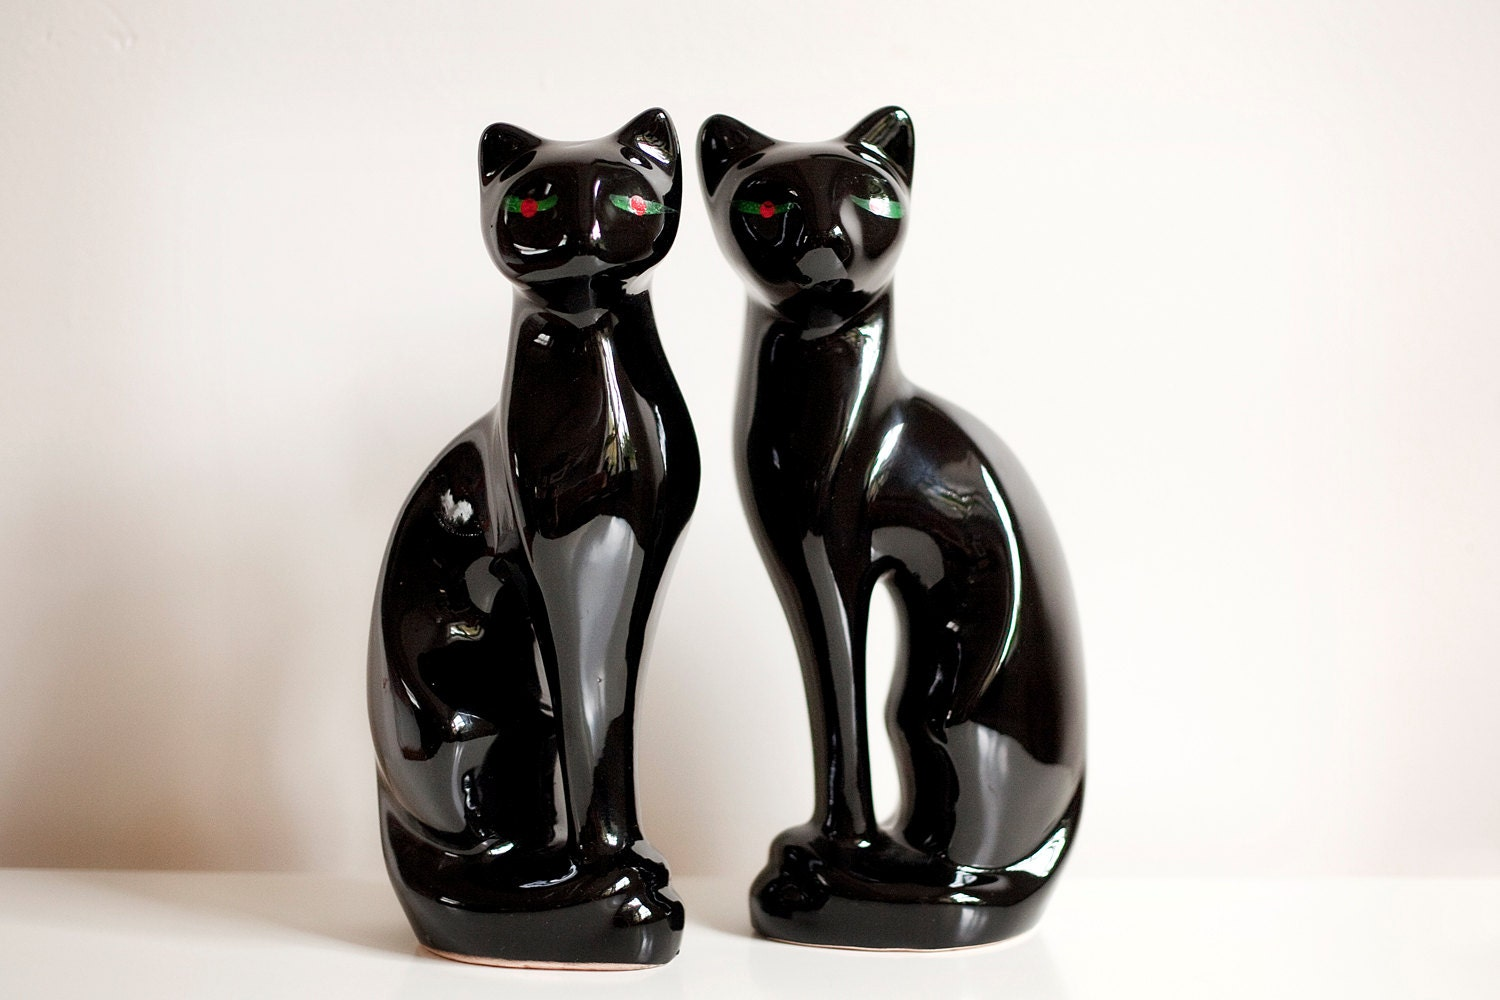 Mid Century Ceramic Black Cat Figurines By Luluvintagefinds